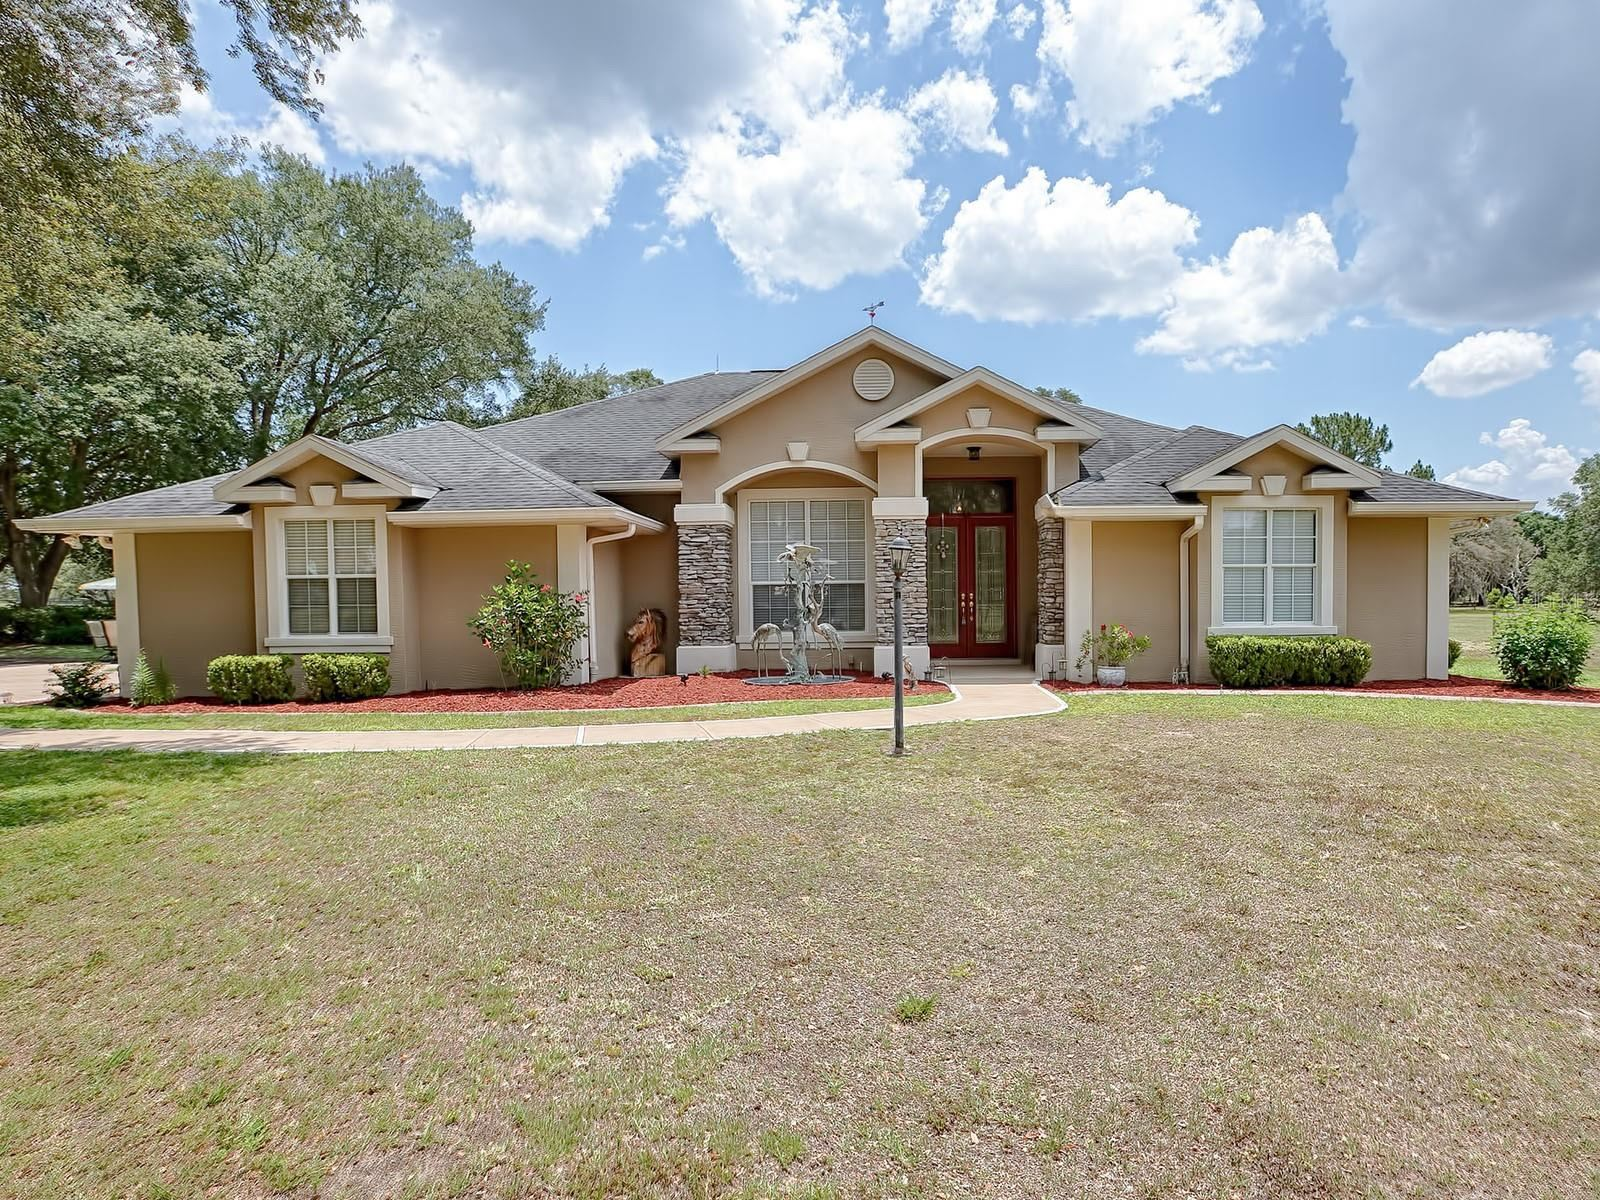 Photo for 2338 MARION COUNTY ROAD, WEIRSDALE, FL 32195 (MLS # G5042397)